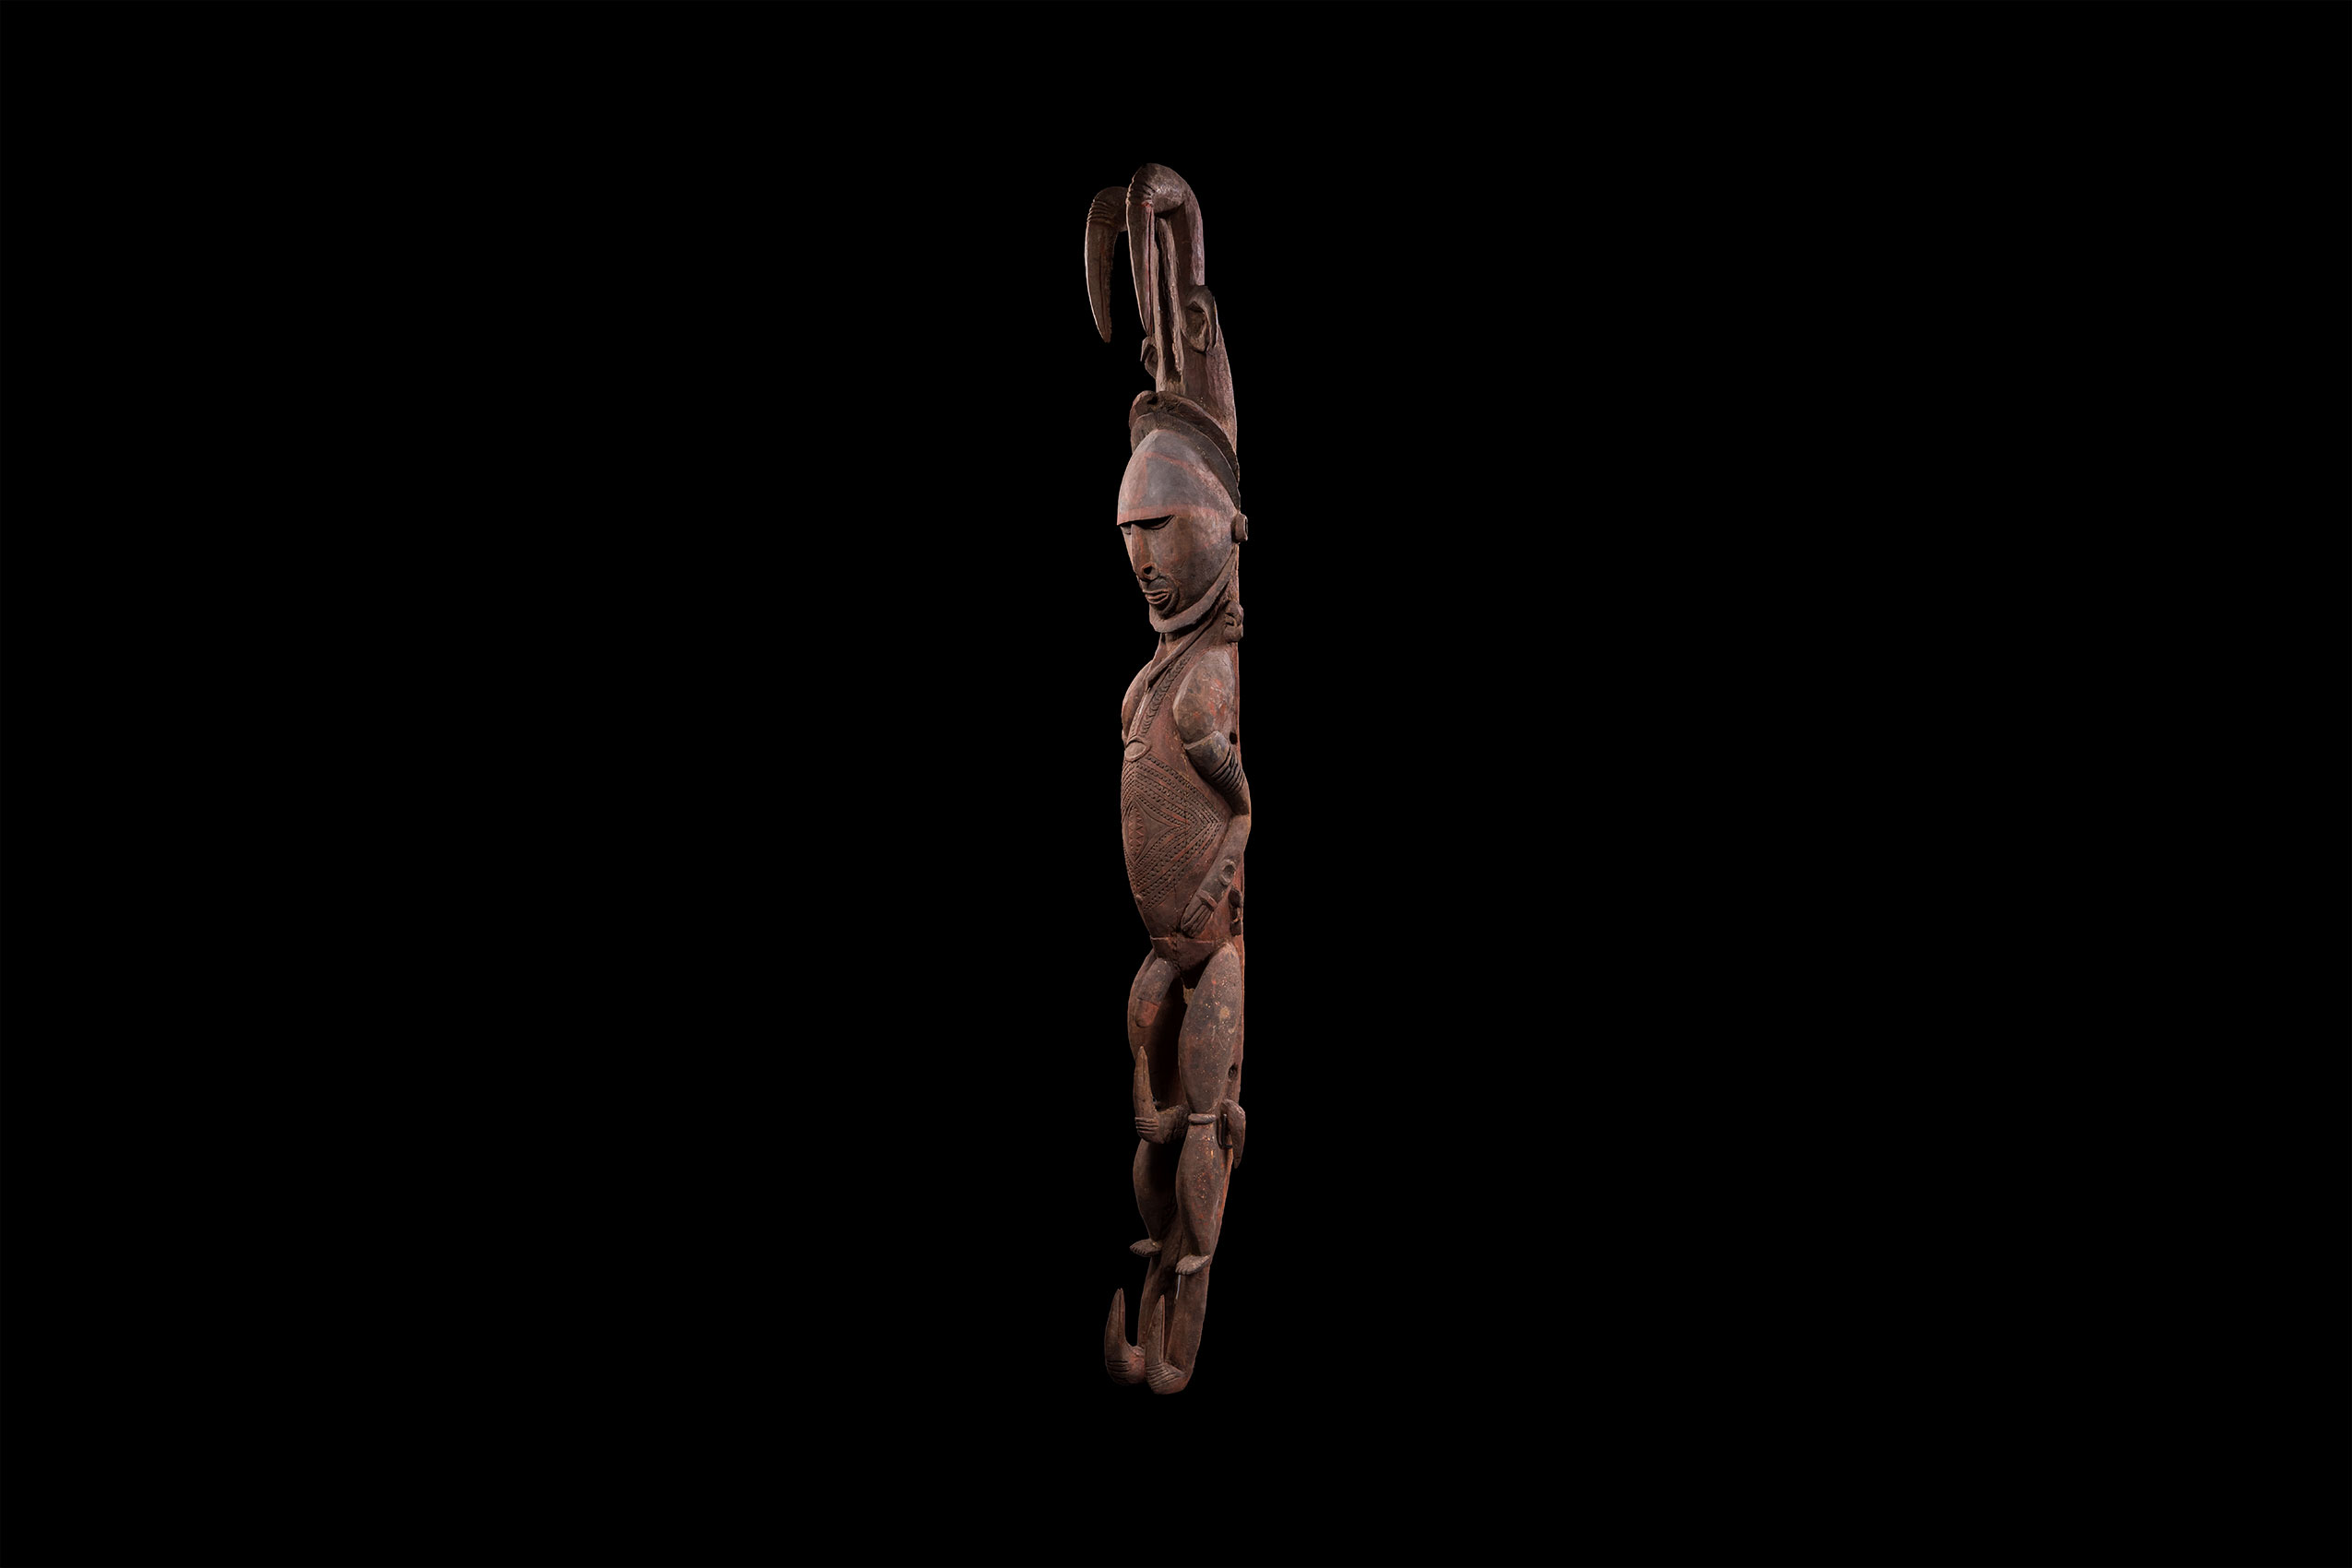 Papua New Guinea art objects and artifacts | Nggwalndu ancestral spirit figures